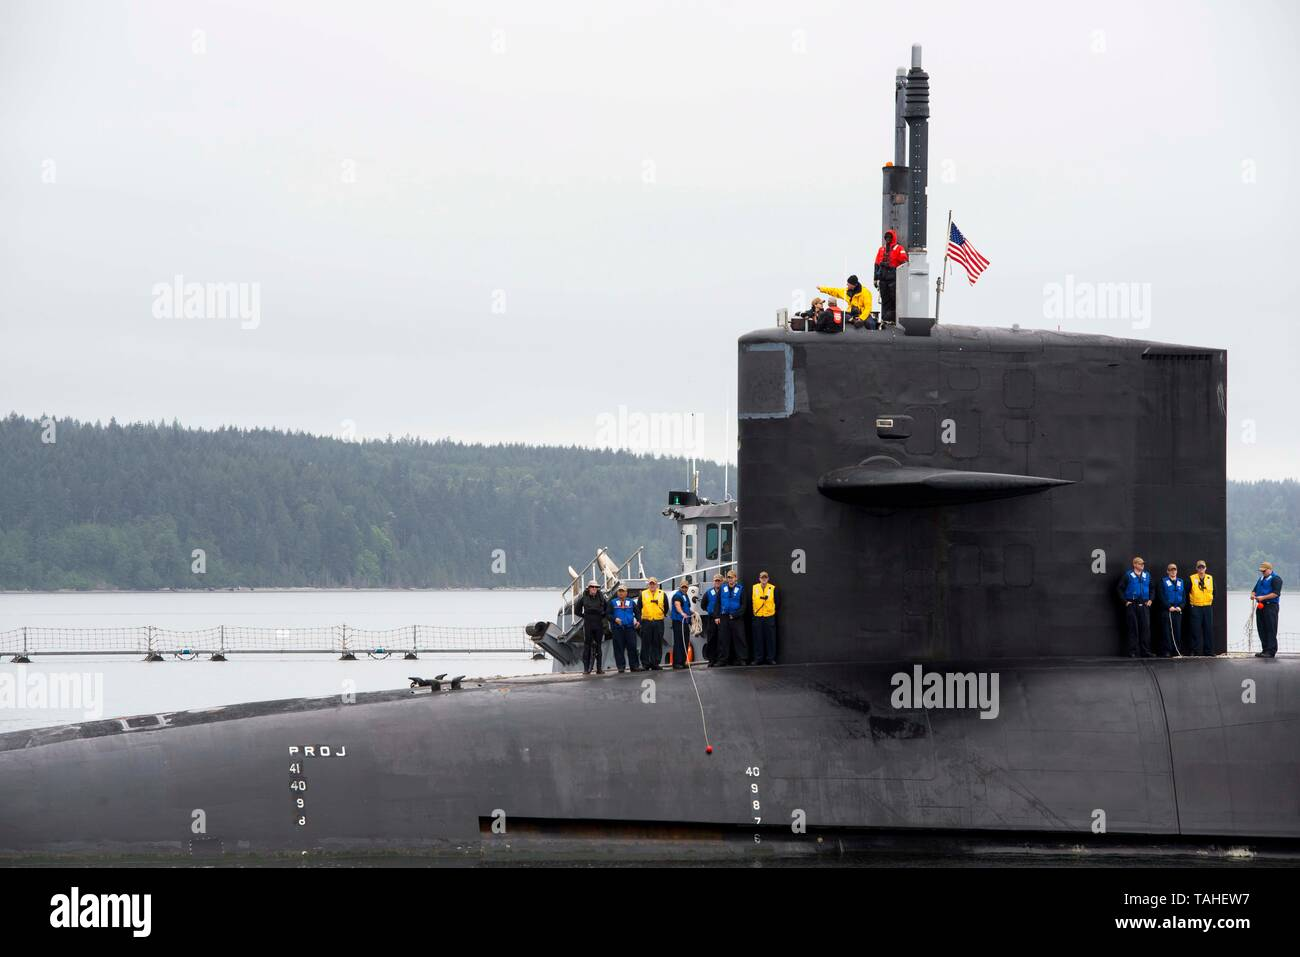 The U.S. Navy Ohio-class nuclear-powered guided-missile submarine USS Michigan arrives at Naval Magazine Indian Island May 13, 2019 in Port Hadlock, Washington. - Stock Image